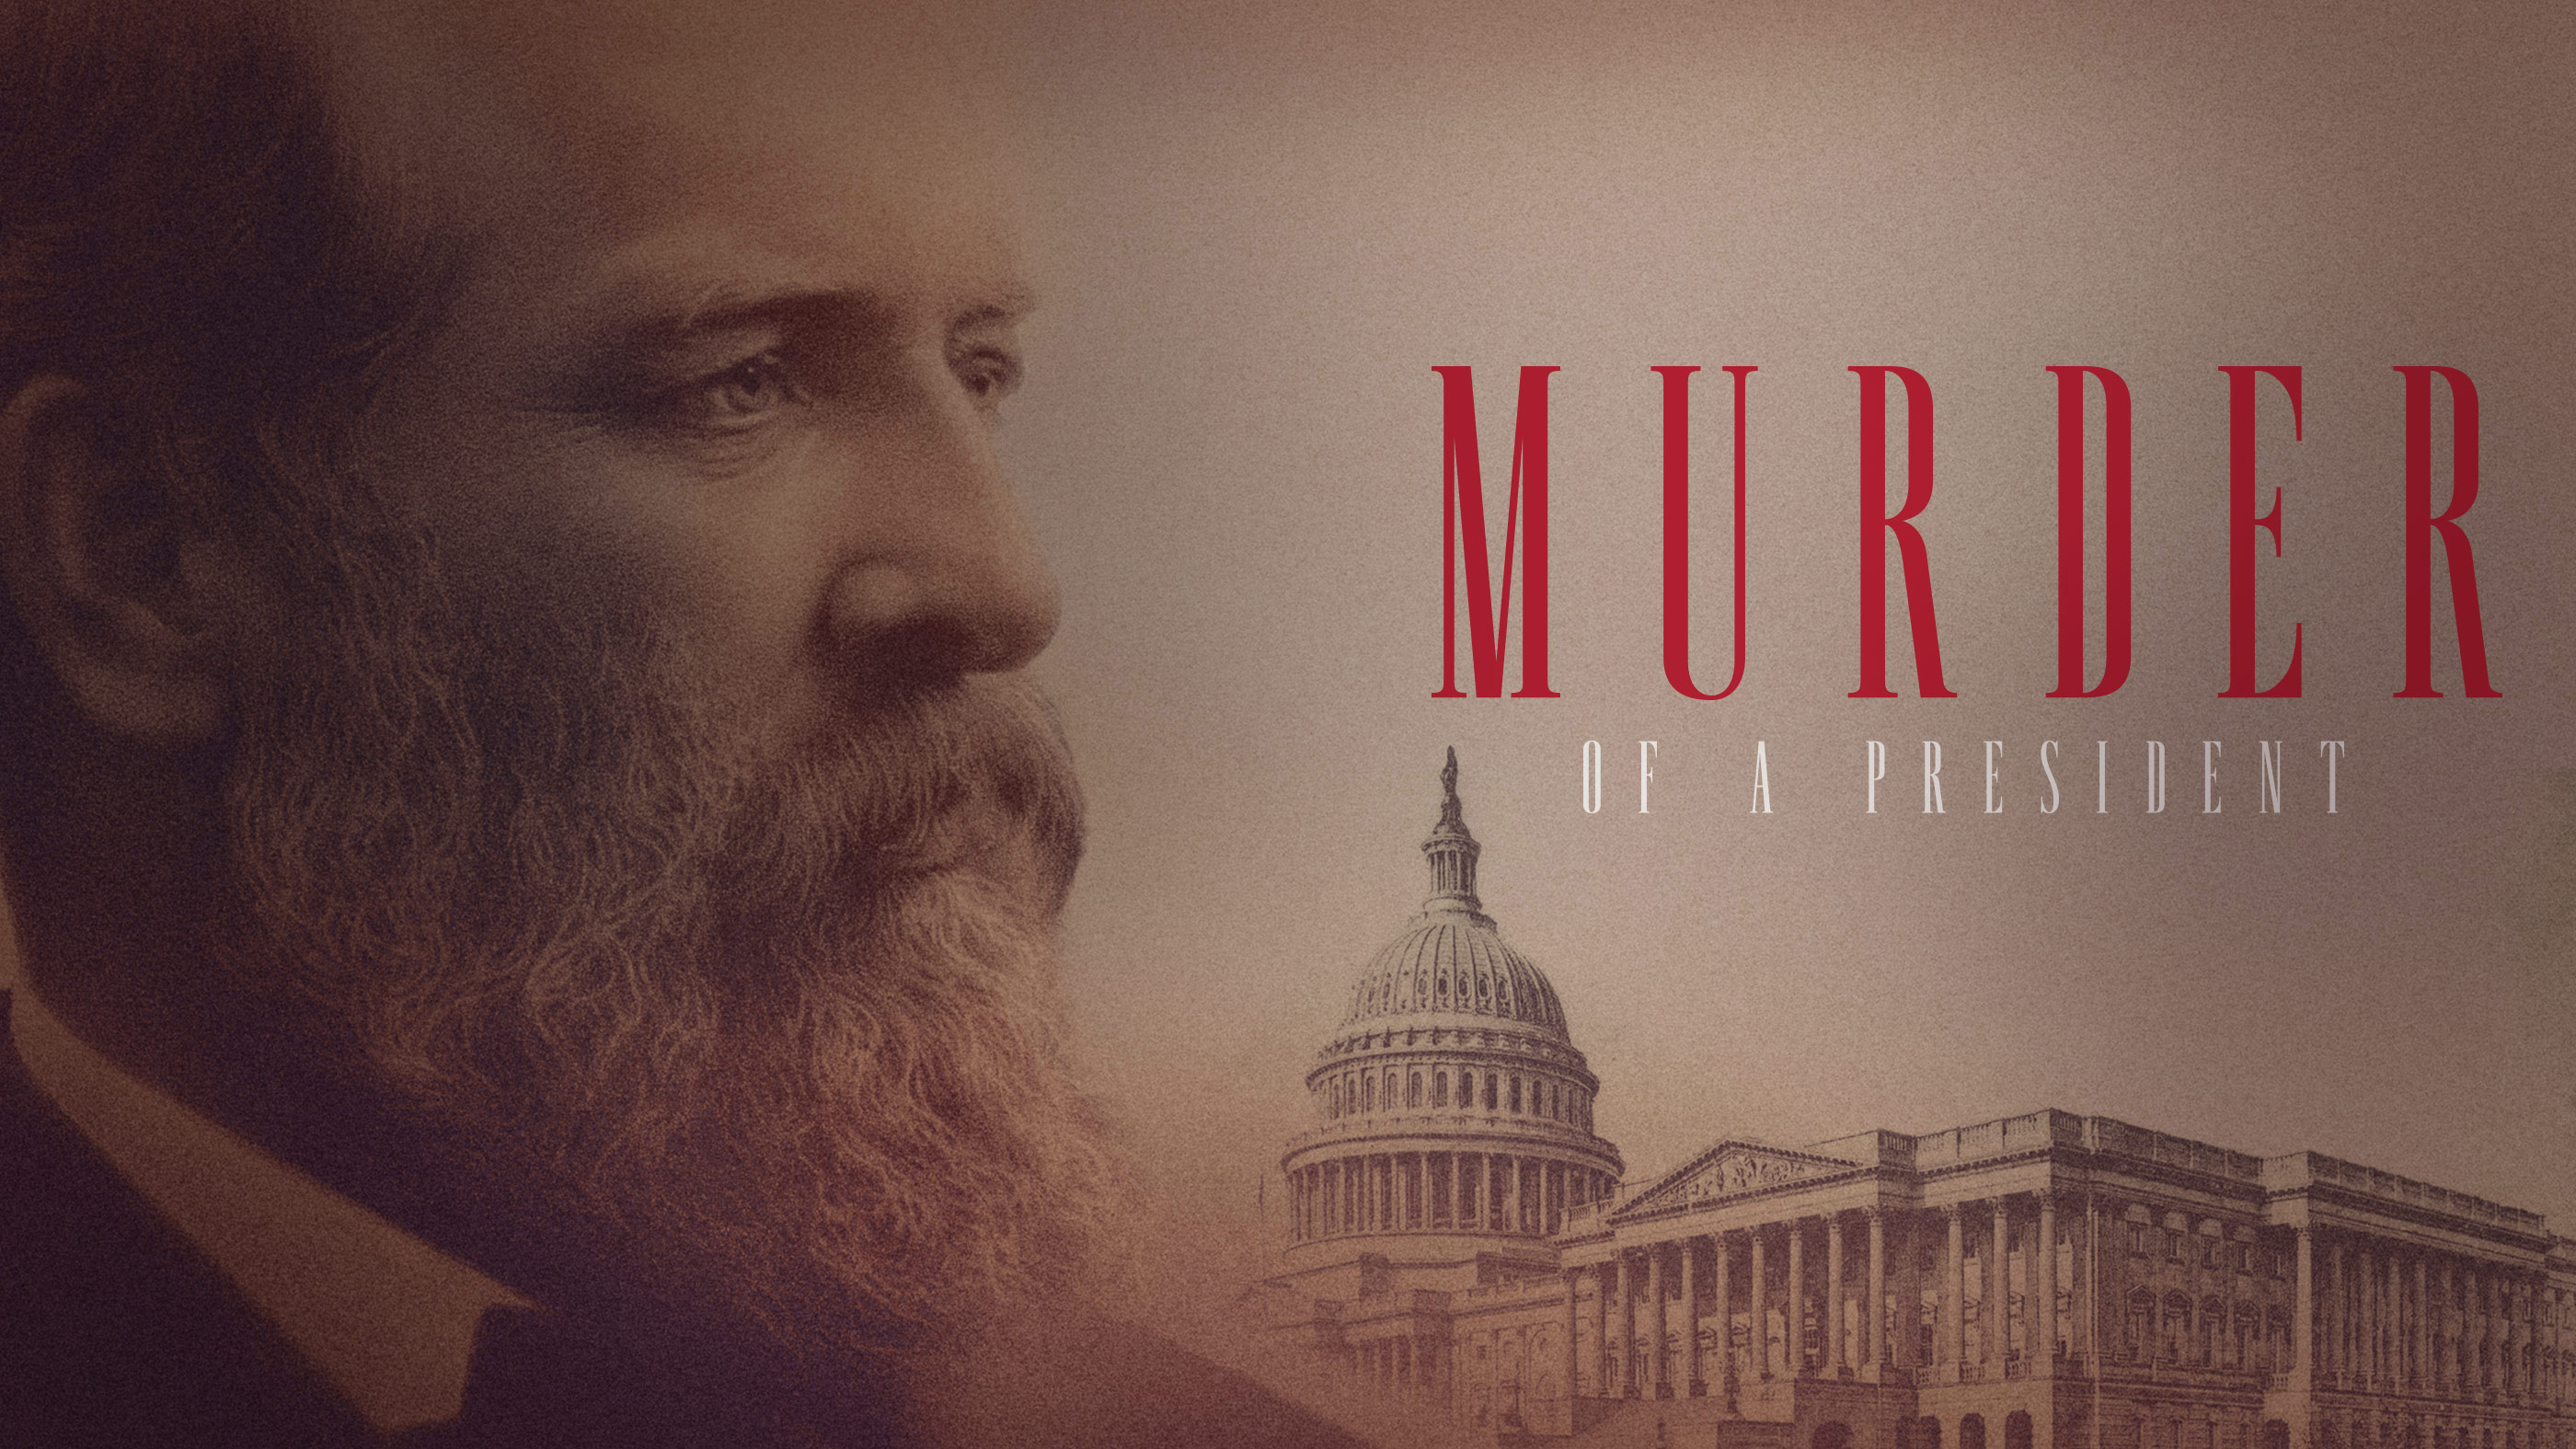 Watch Murder Of A President American Experience Official Site Pbs